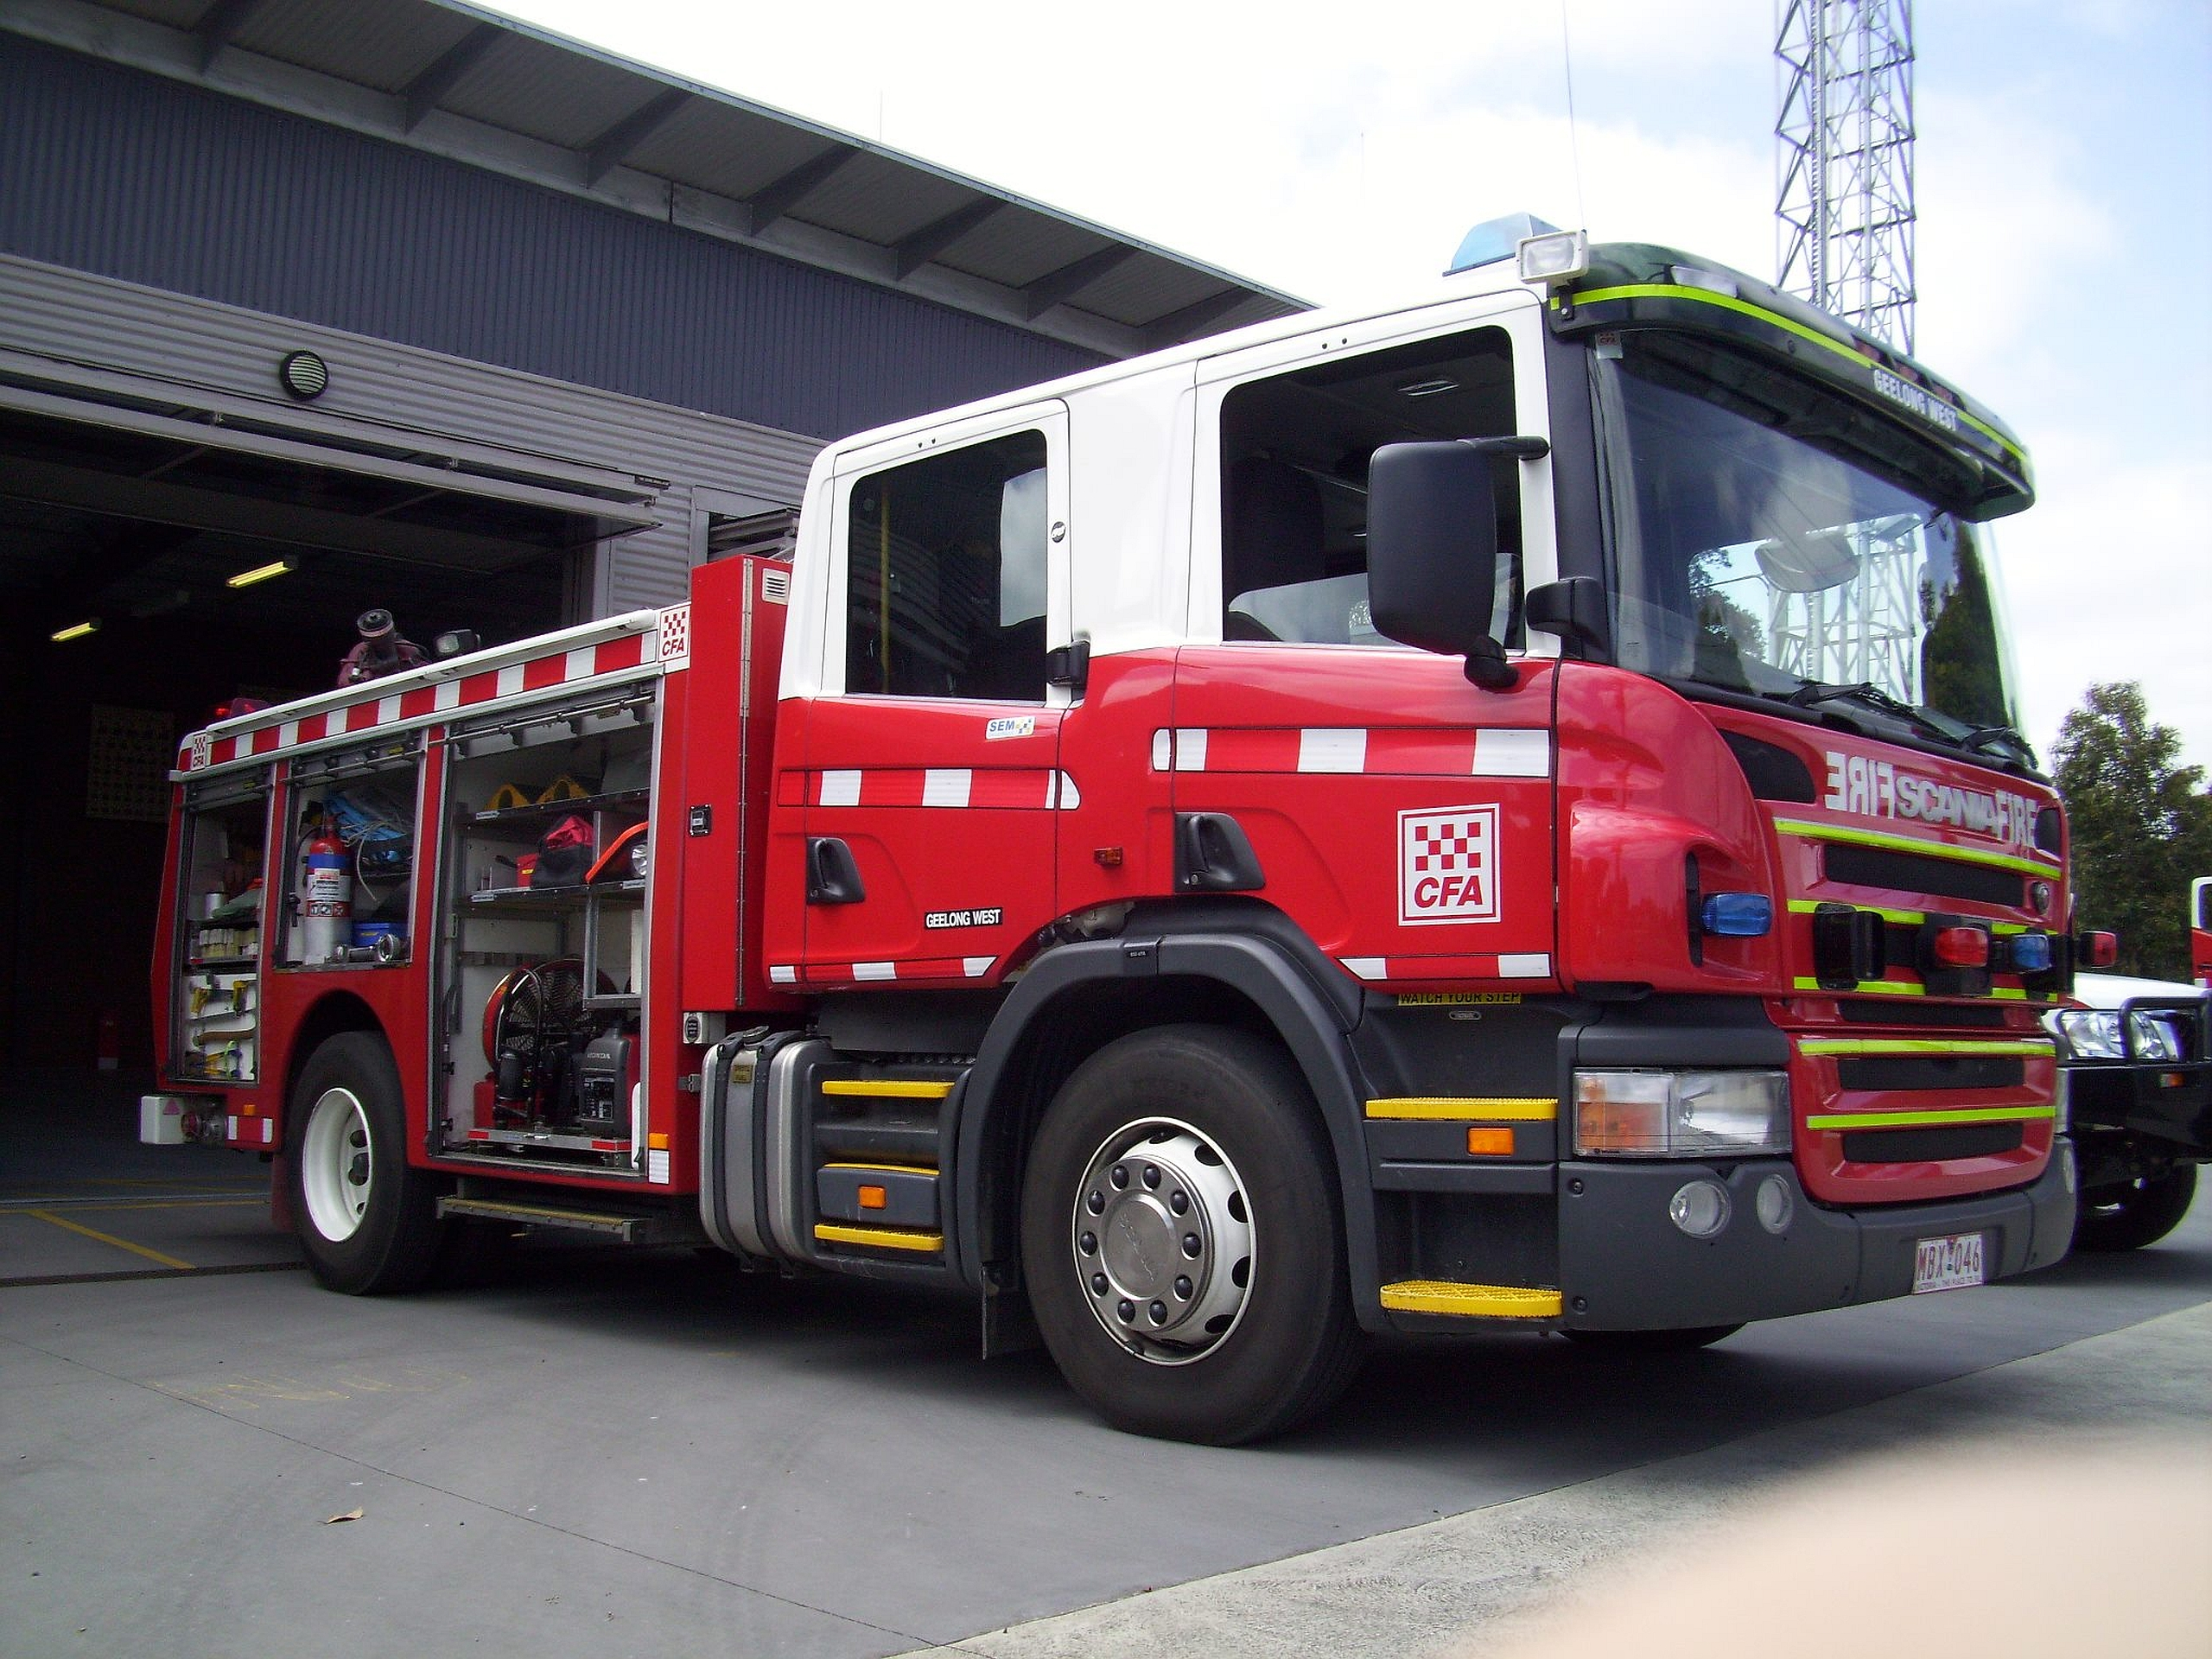 Cool Fire Truck Wallpapers Vehicles   scania fire truck 2560x1920